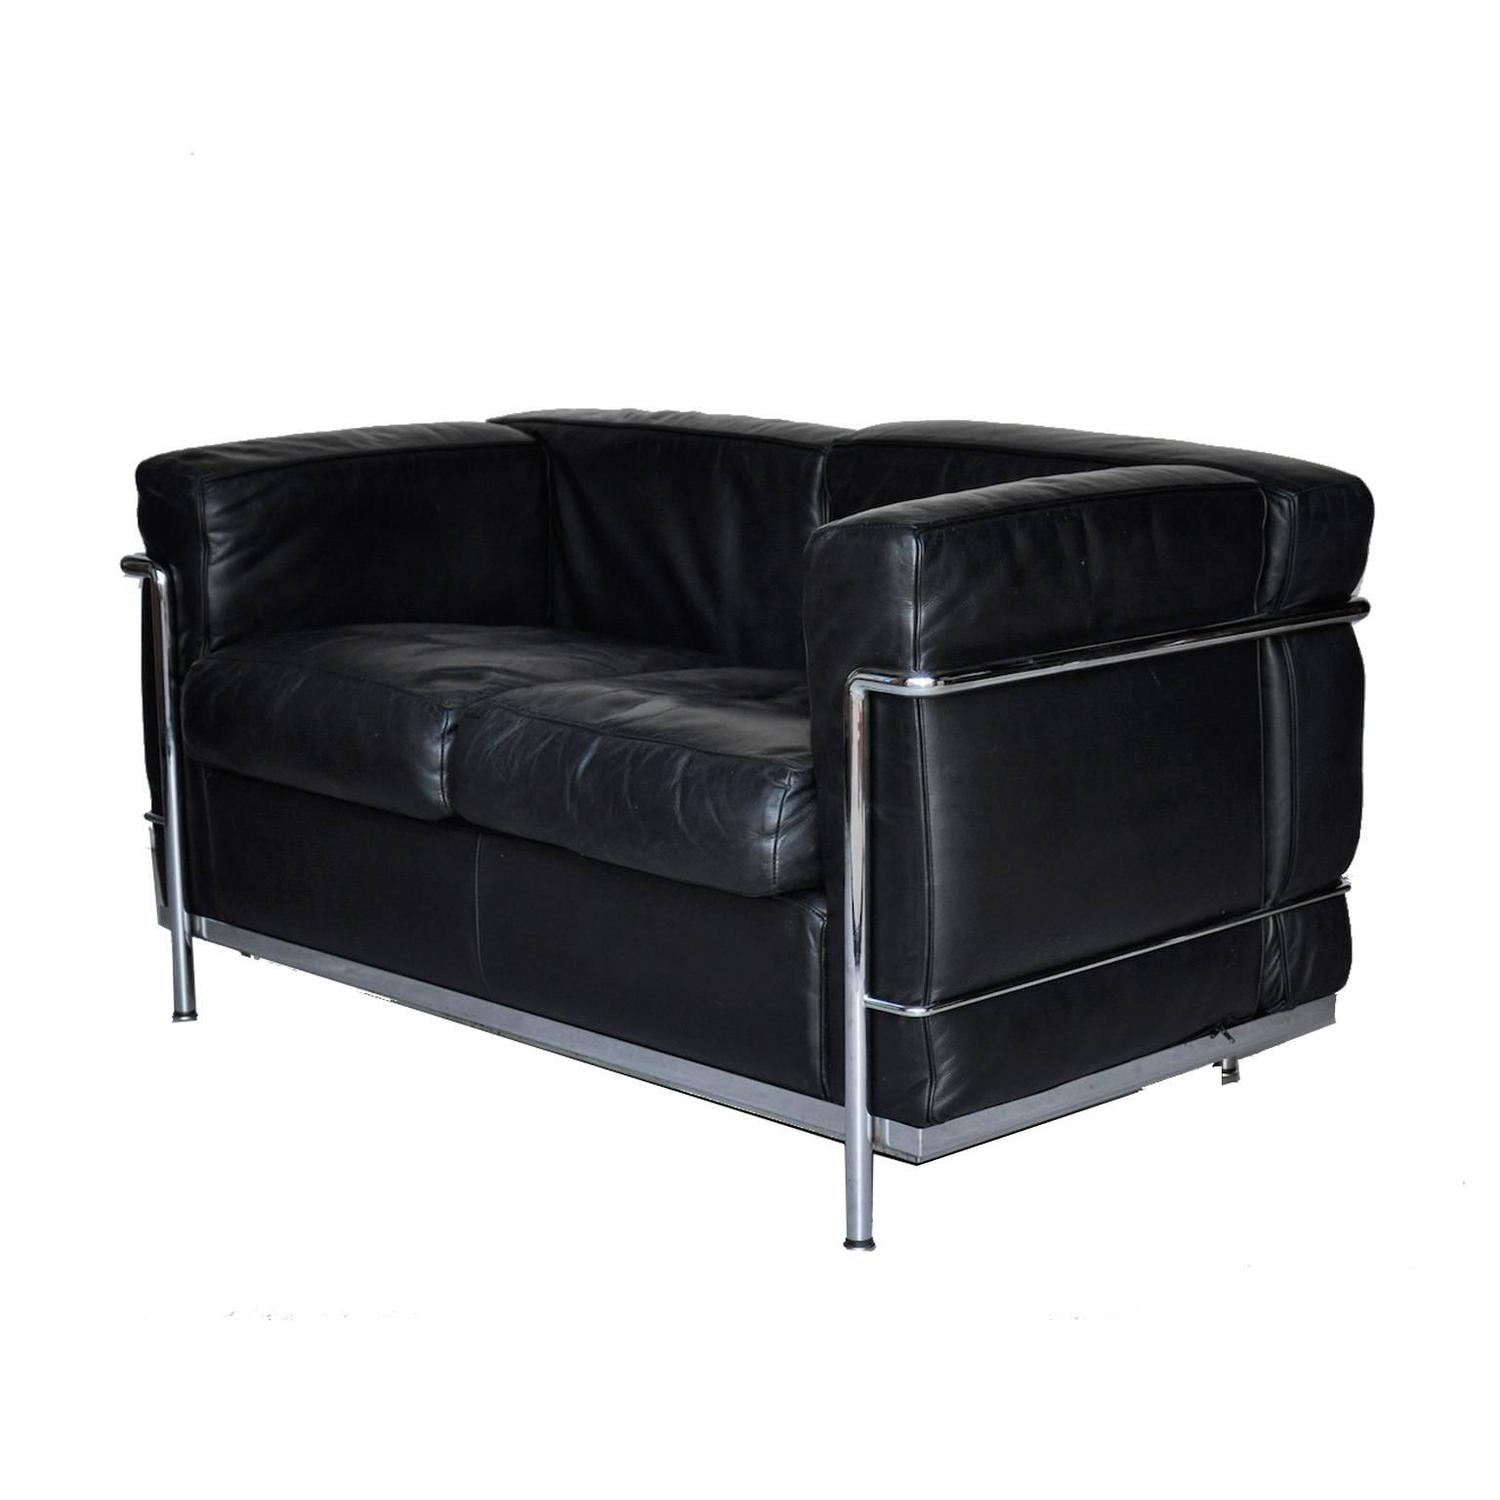 Le corbusier lc2 for cassina leather sofa at 1stdibs for Le corbusier sofa